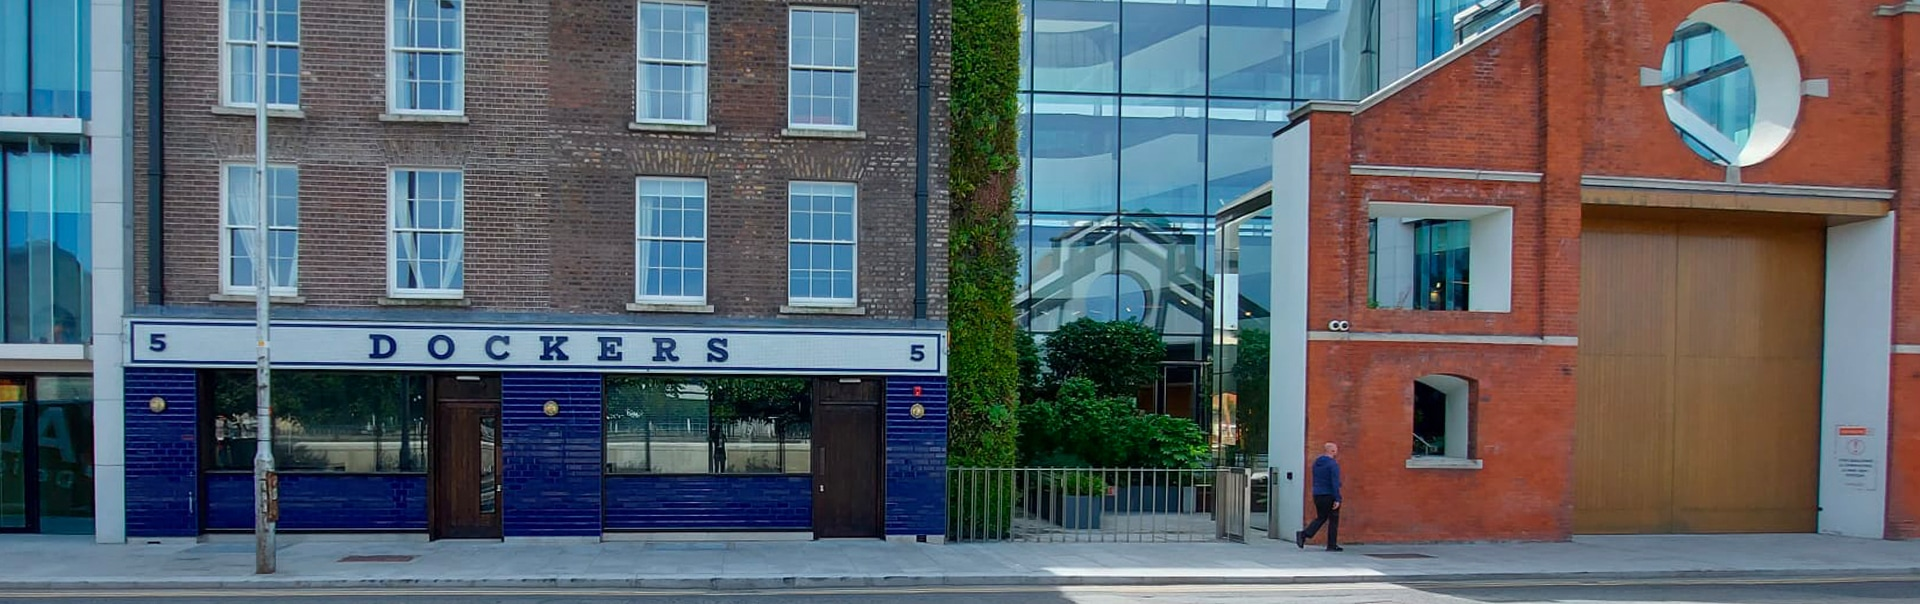 Colour matched lettering complements the mosaic tile frontage on the new look Dockers pub at Windmill Lane